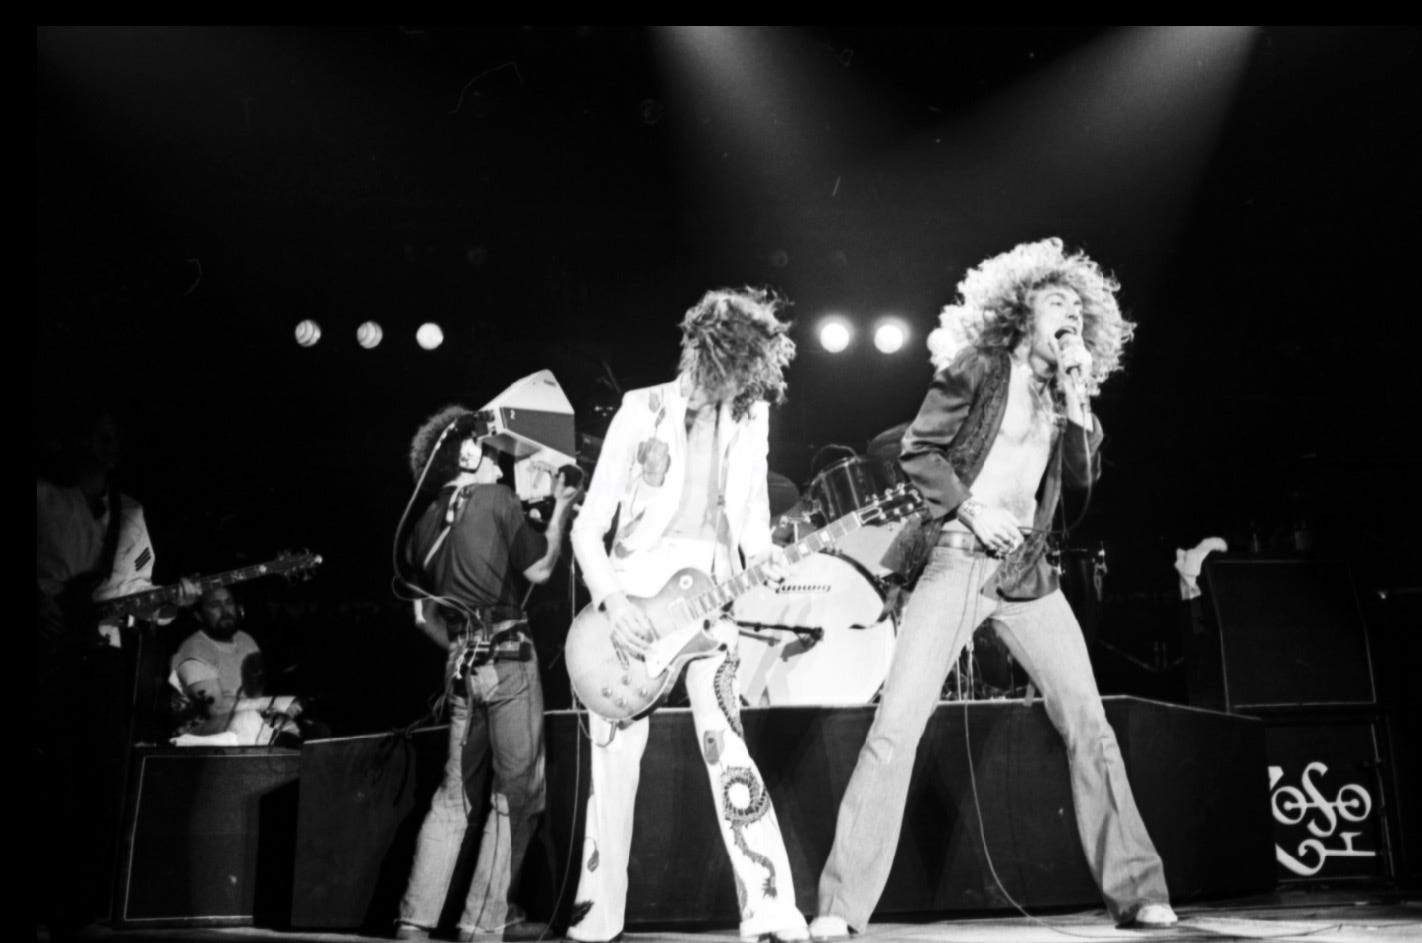 Led Zeppelin, with lead singer Robert Palmer, perform